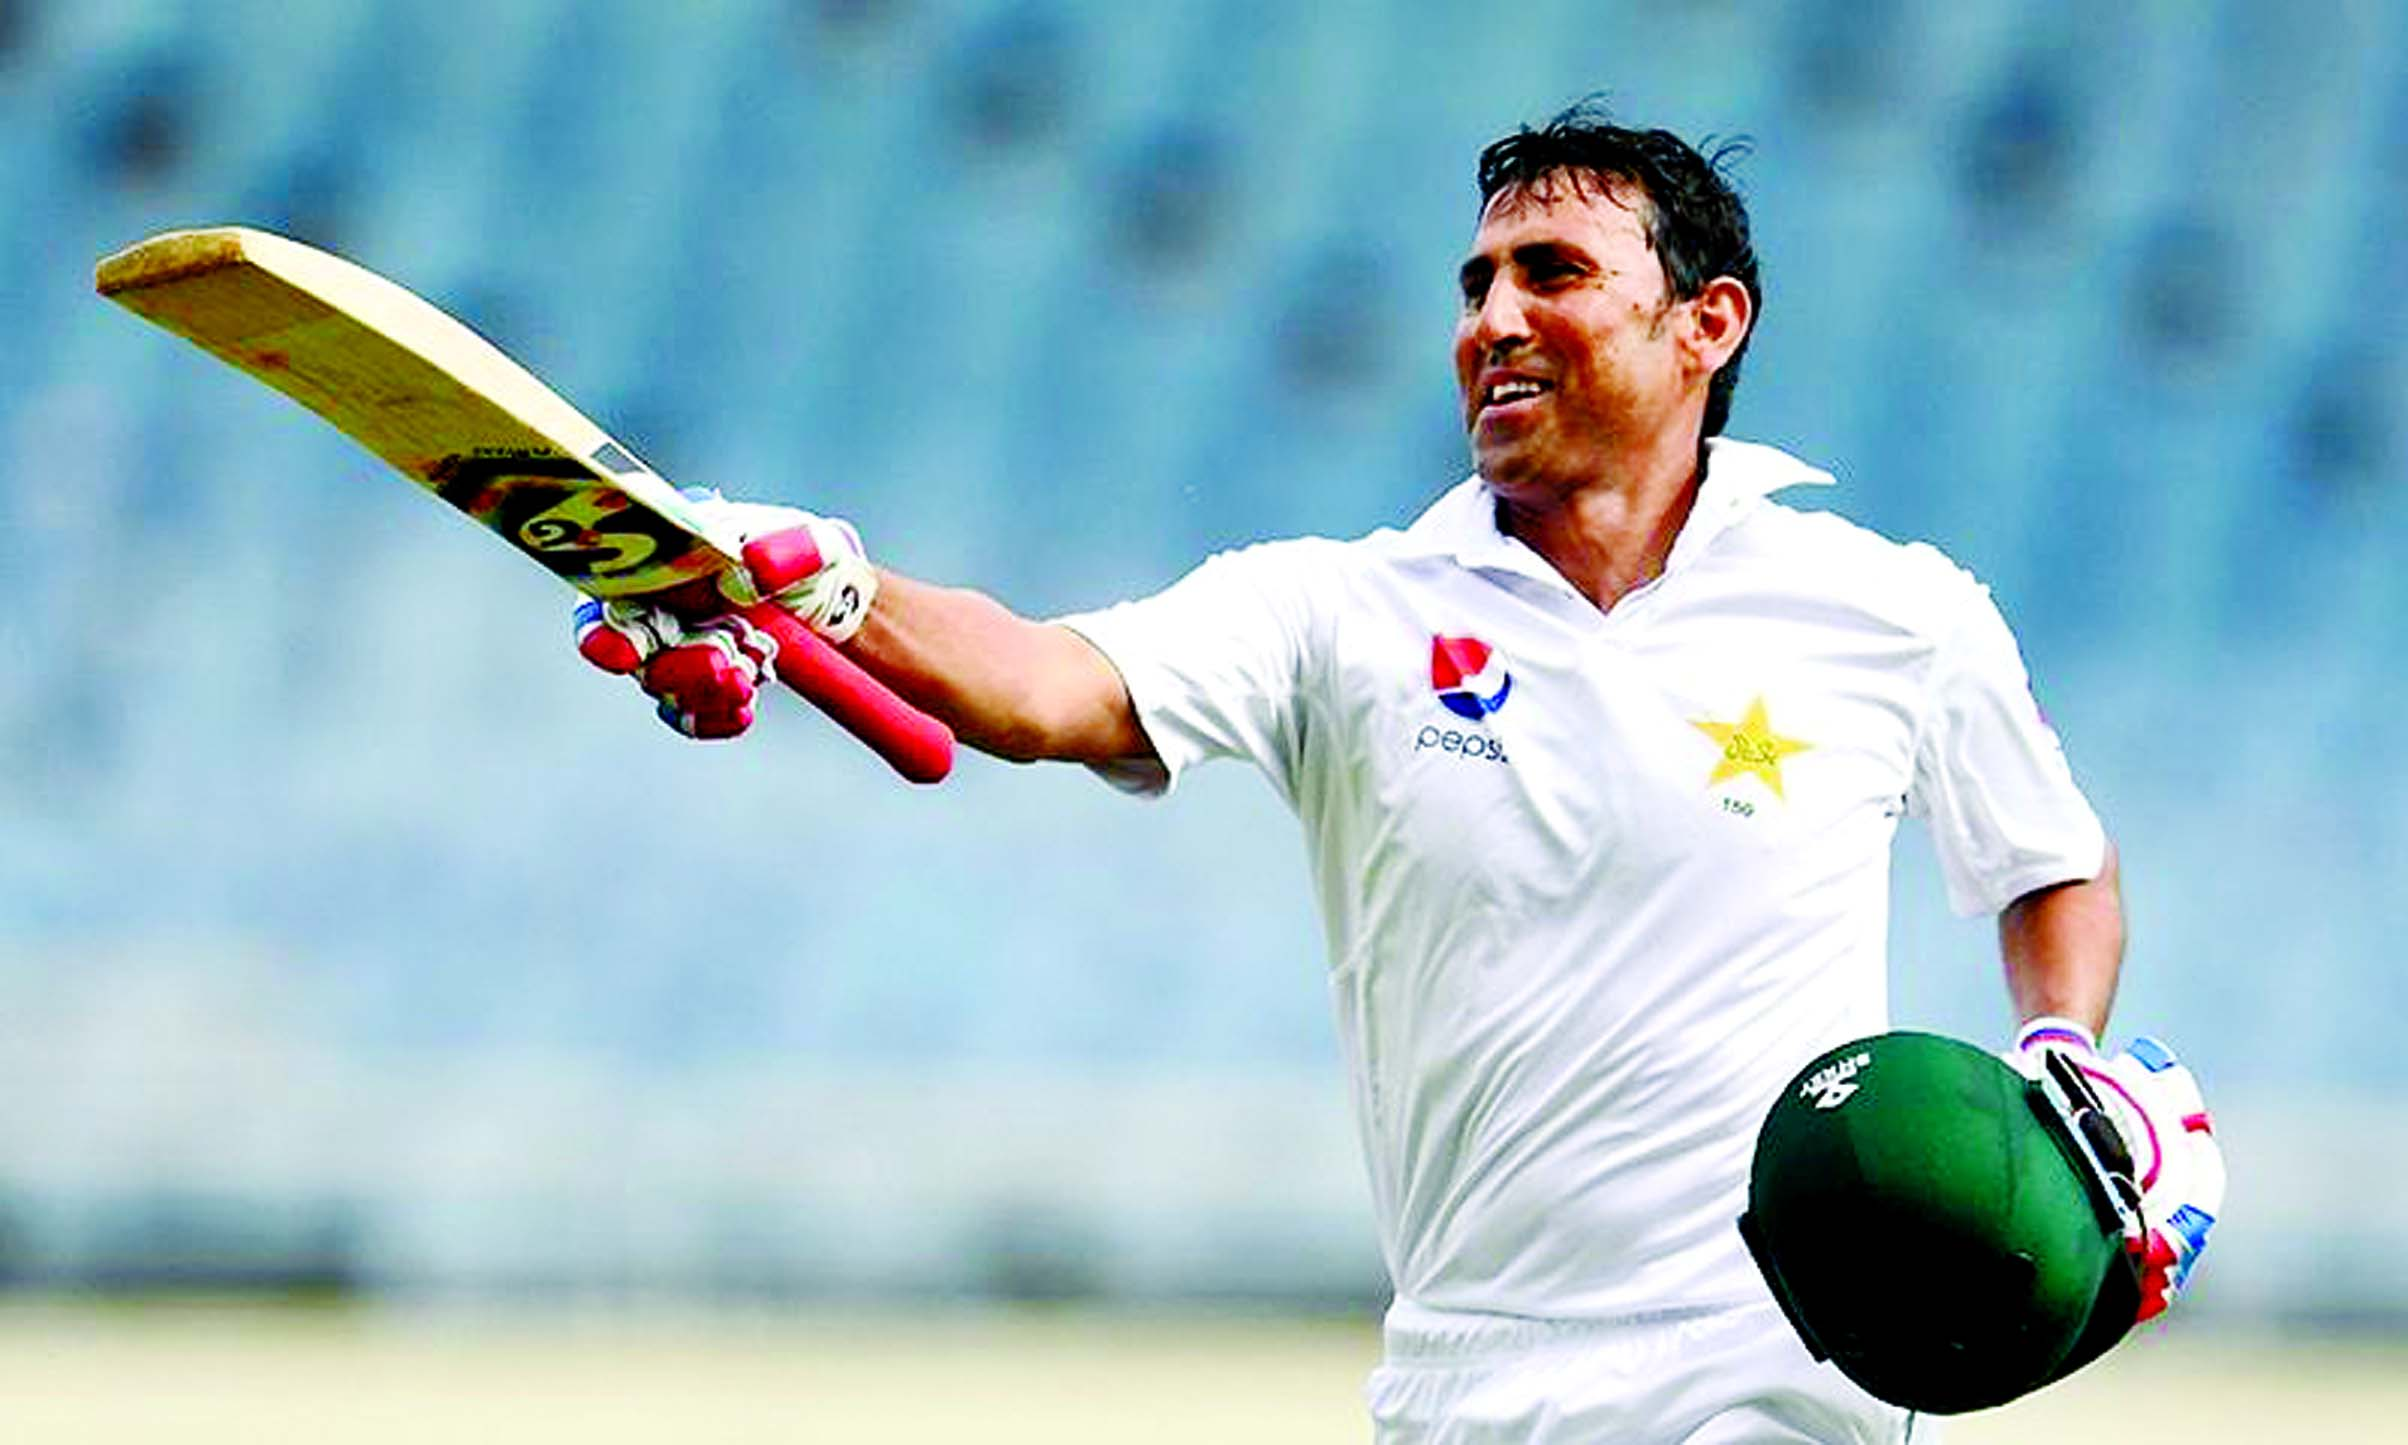 Younis becomes first Pakistani to score 10,000 runs in Test cricket